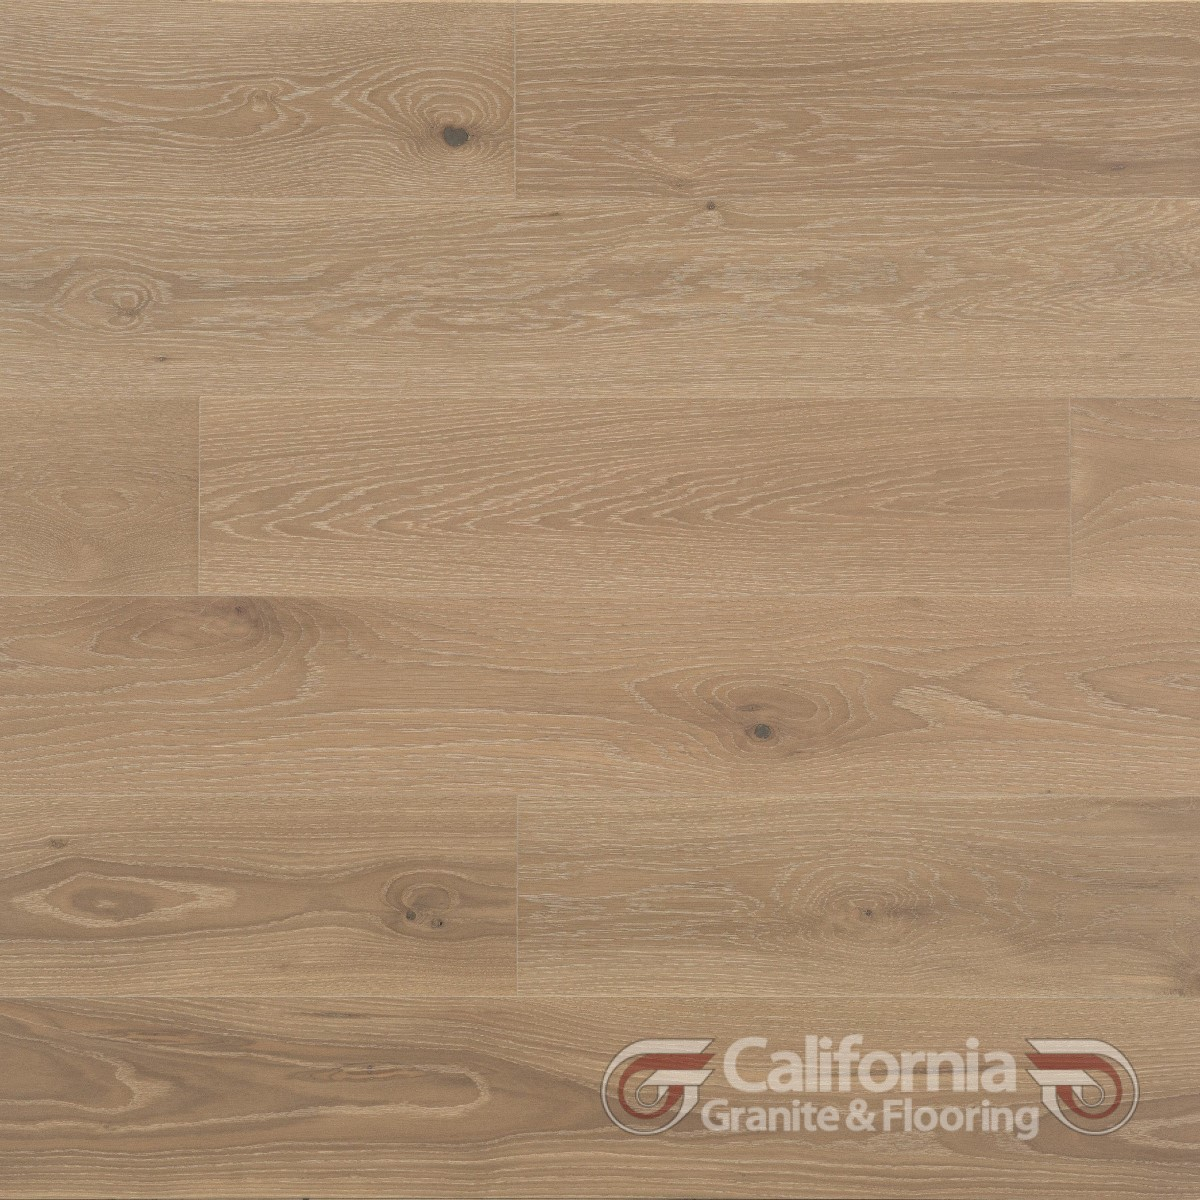 hardwood-flooring-white-oak-hula-hoop-character-brushed-herringbone-2